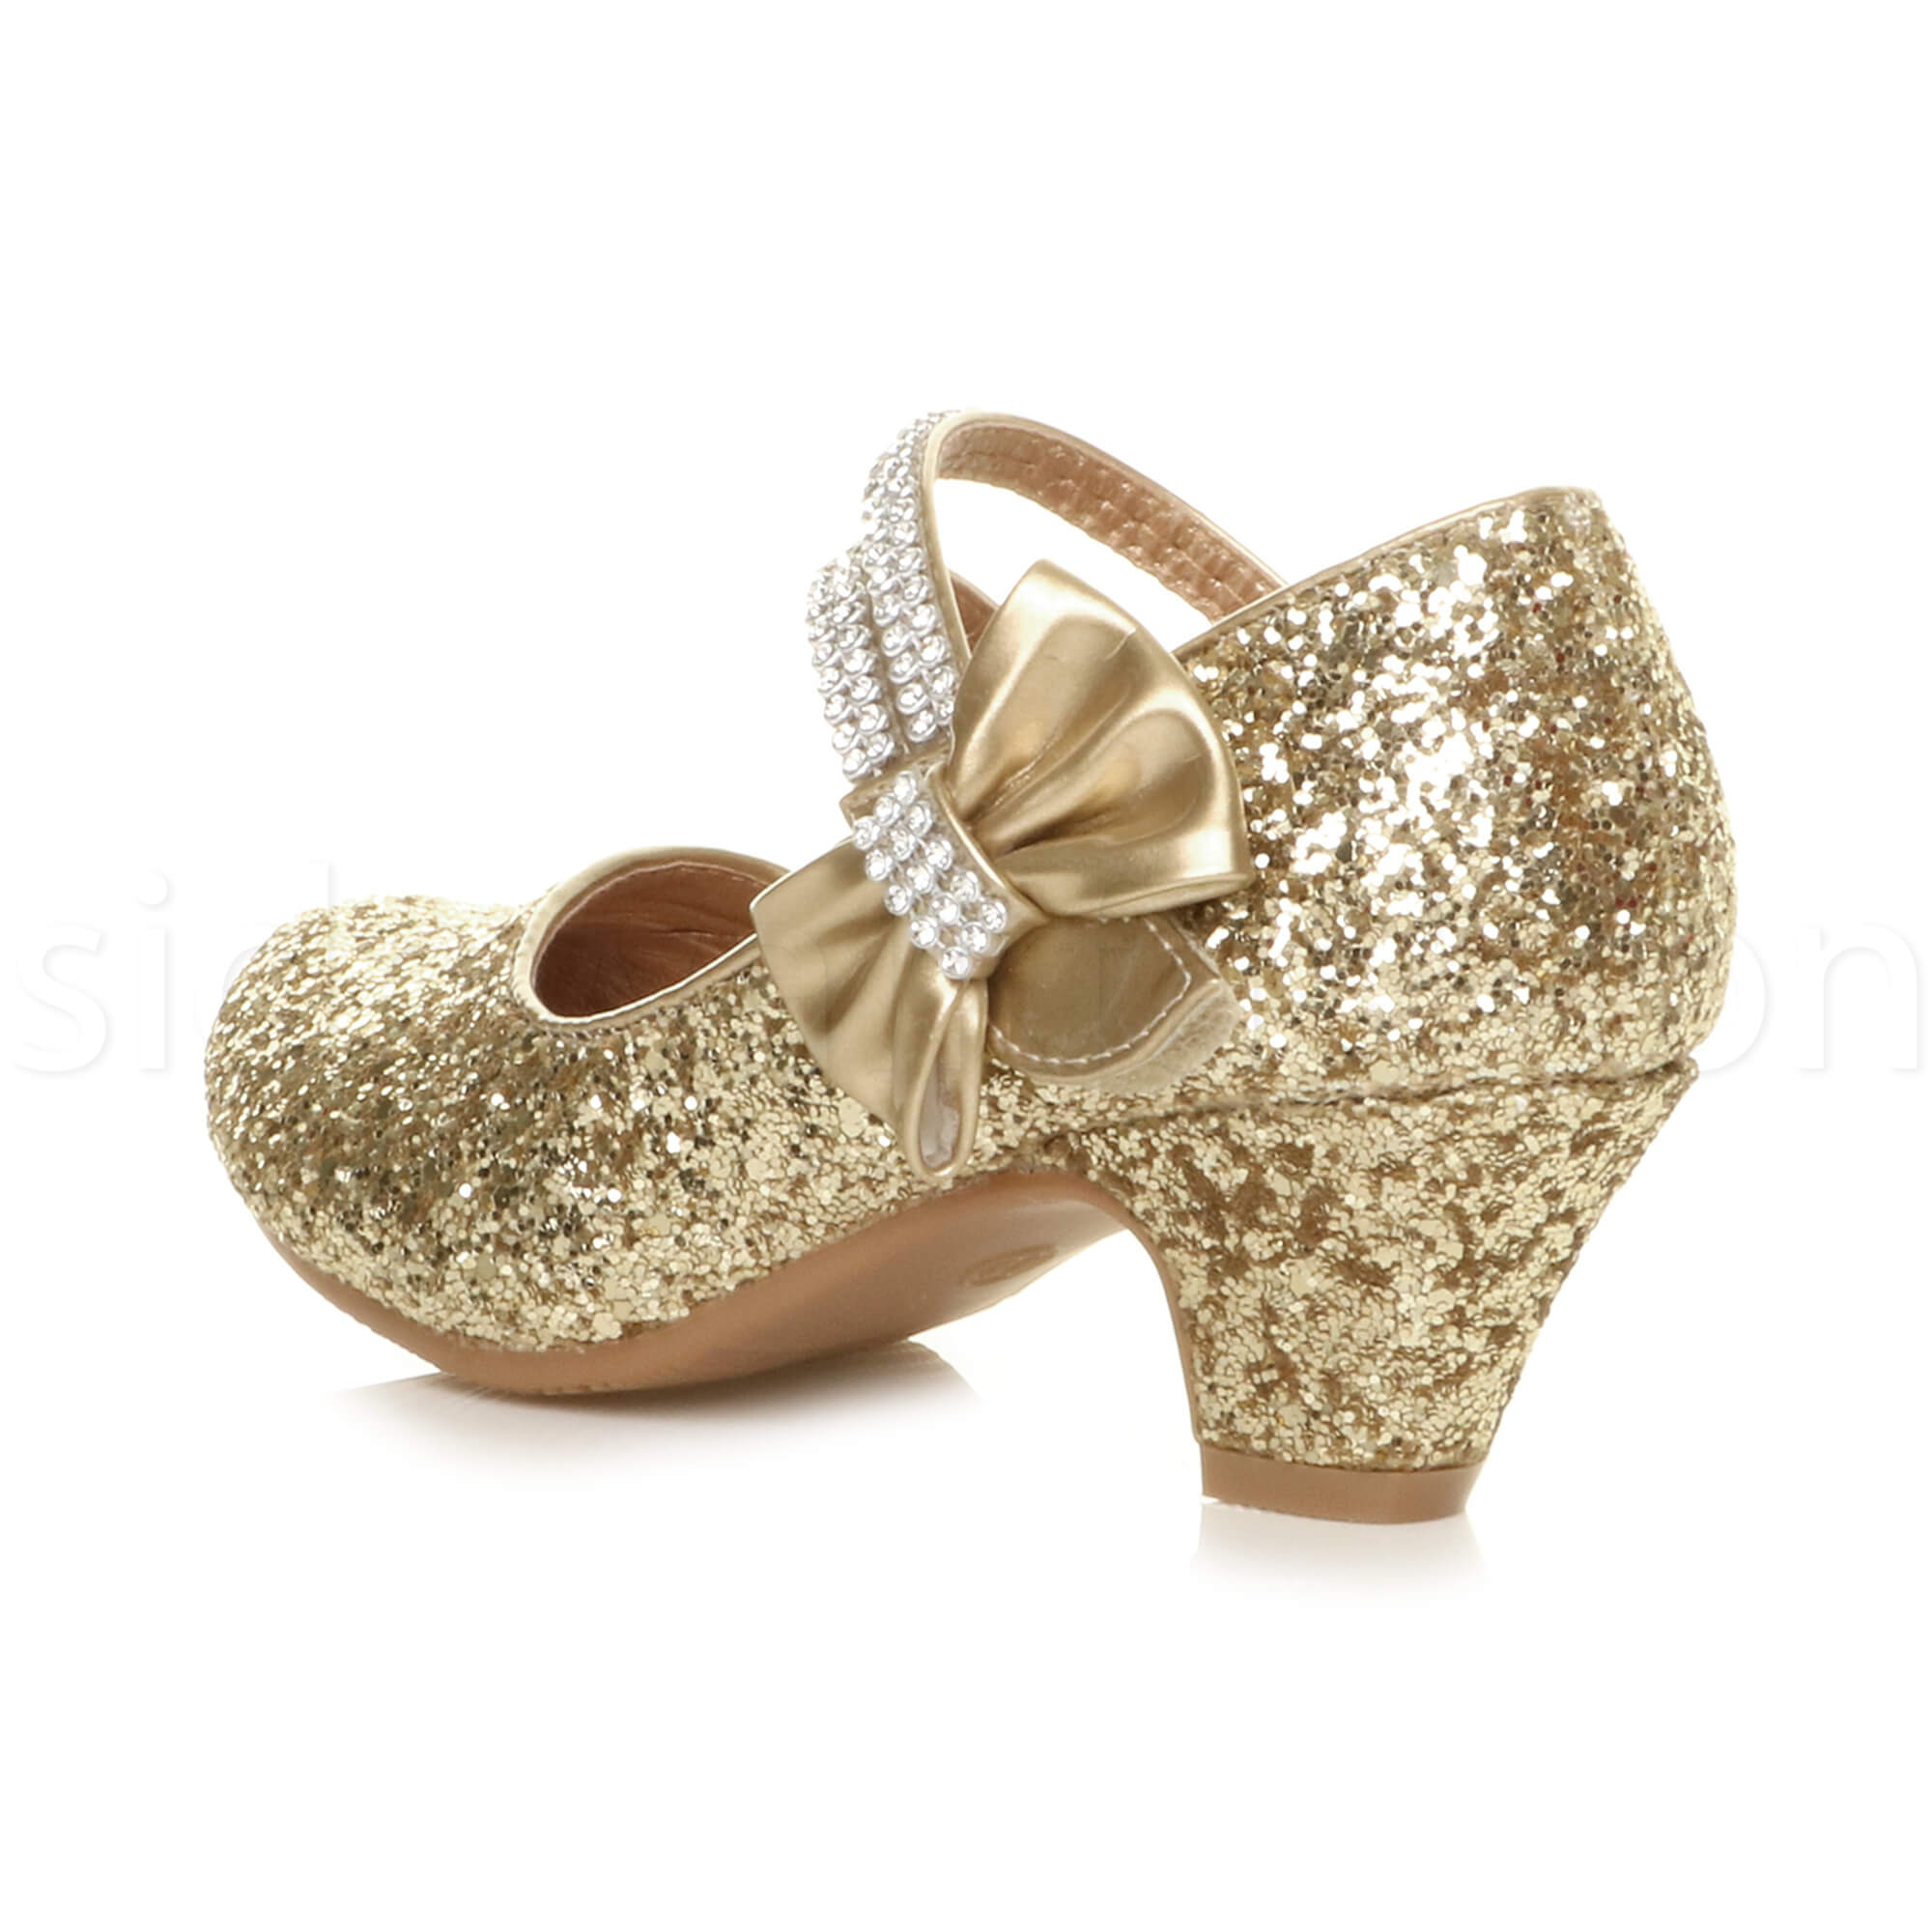 Girls kids childrens low heel party wedding mary jane sandals